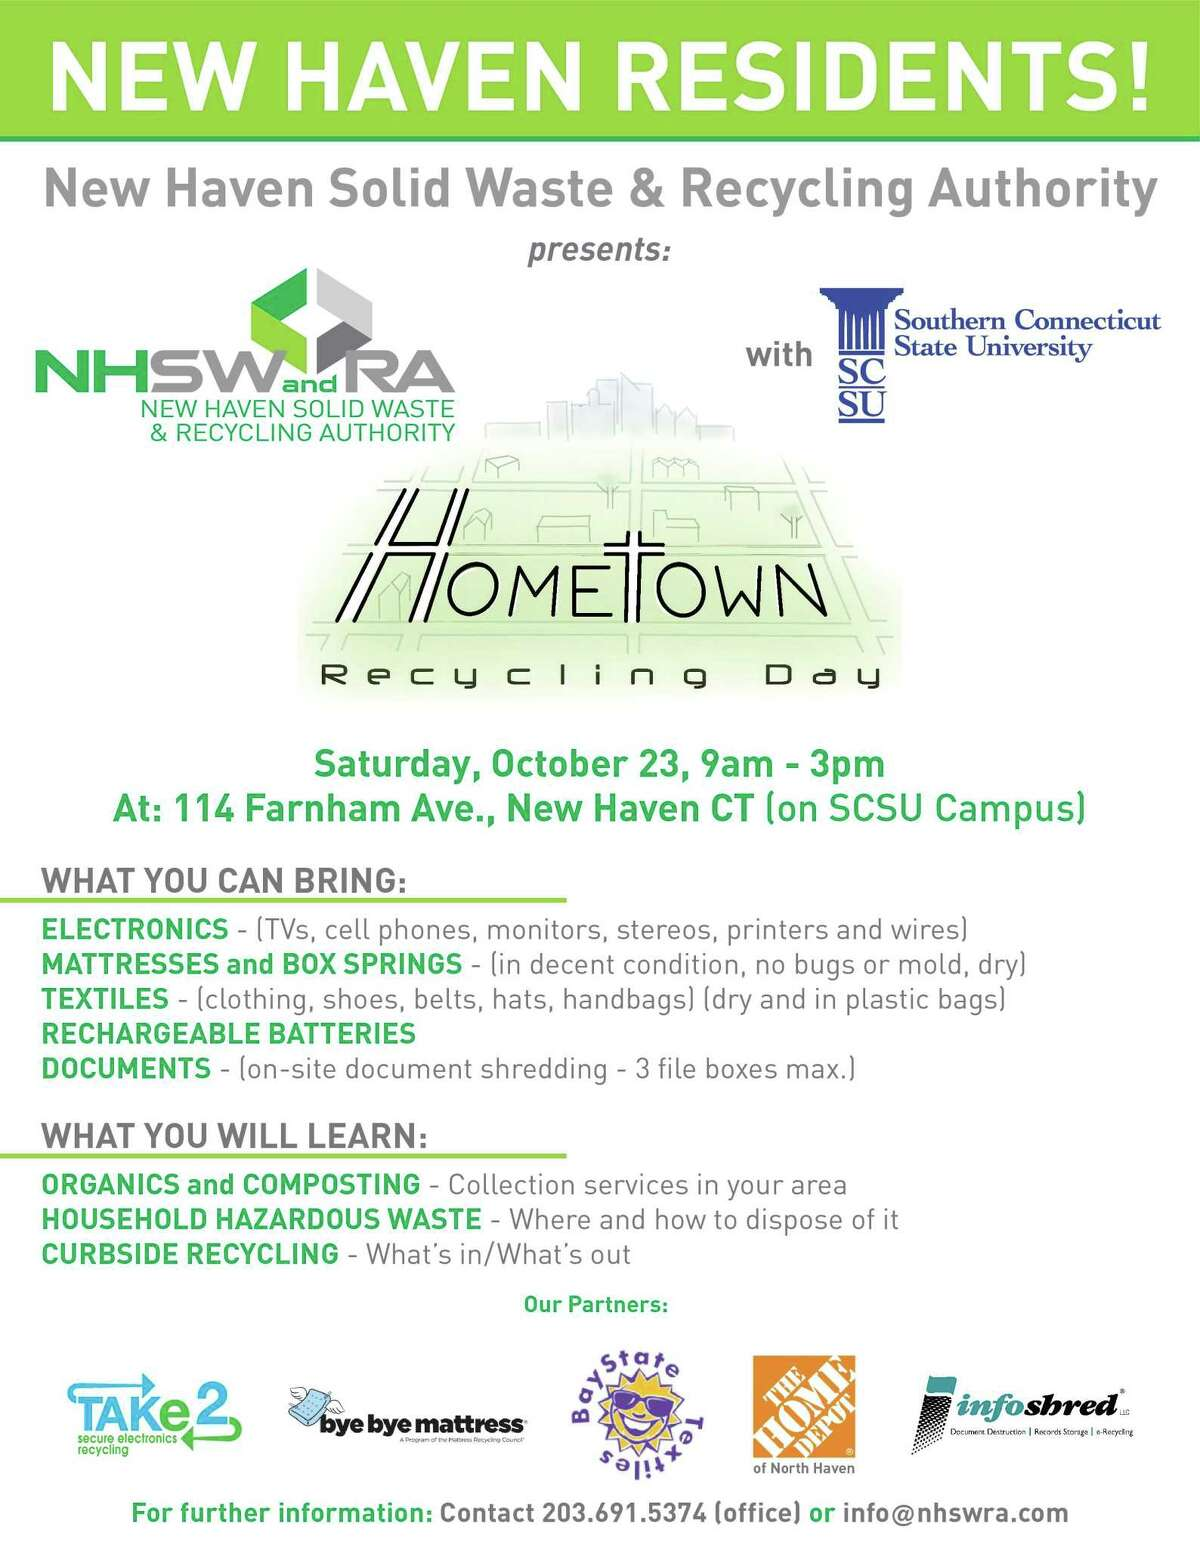 New Haven Solid Waste & Recycling Authority Recycling Day